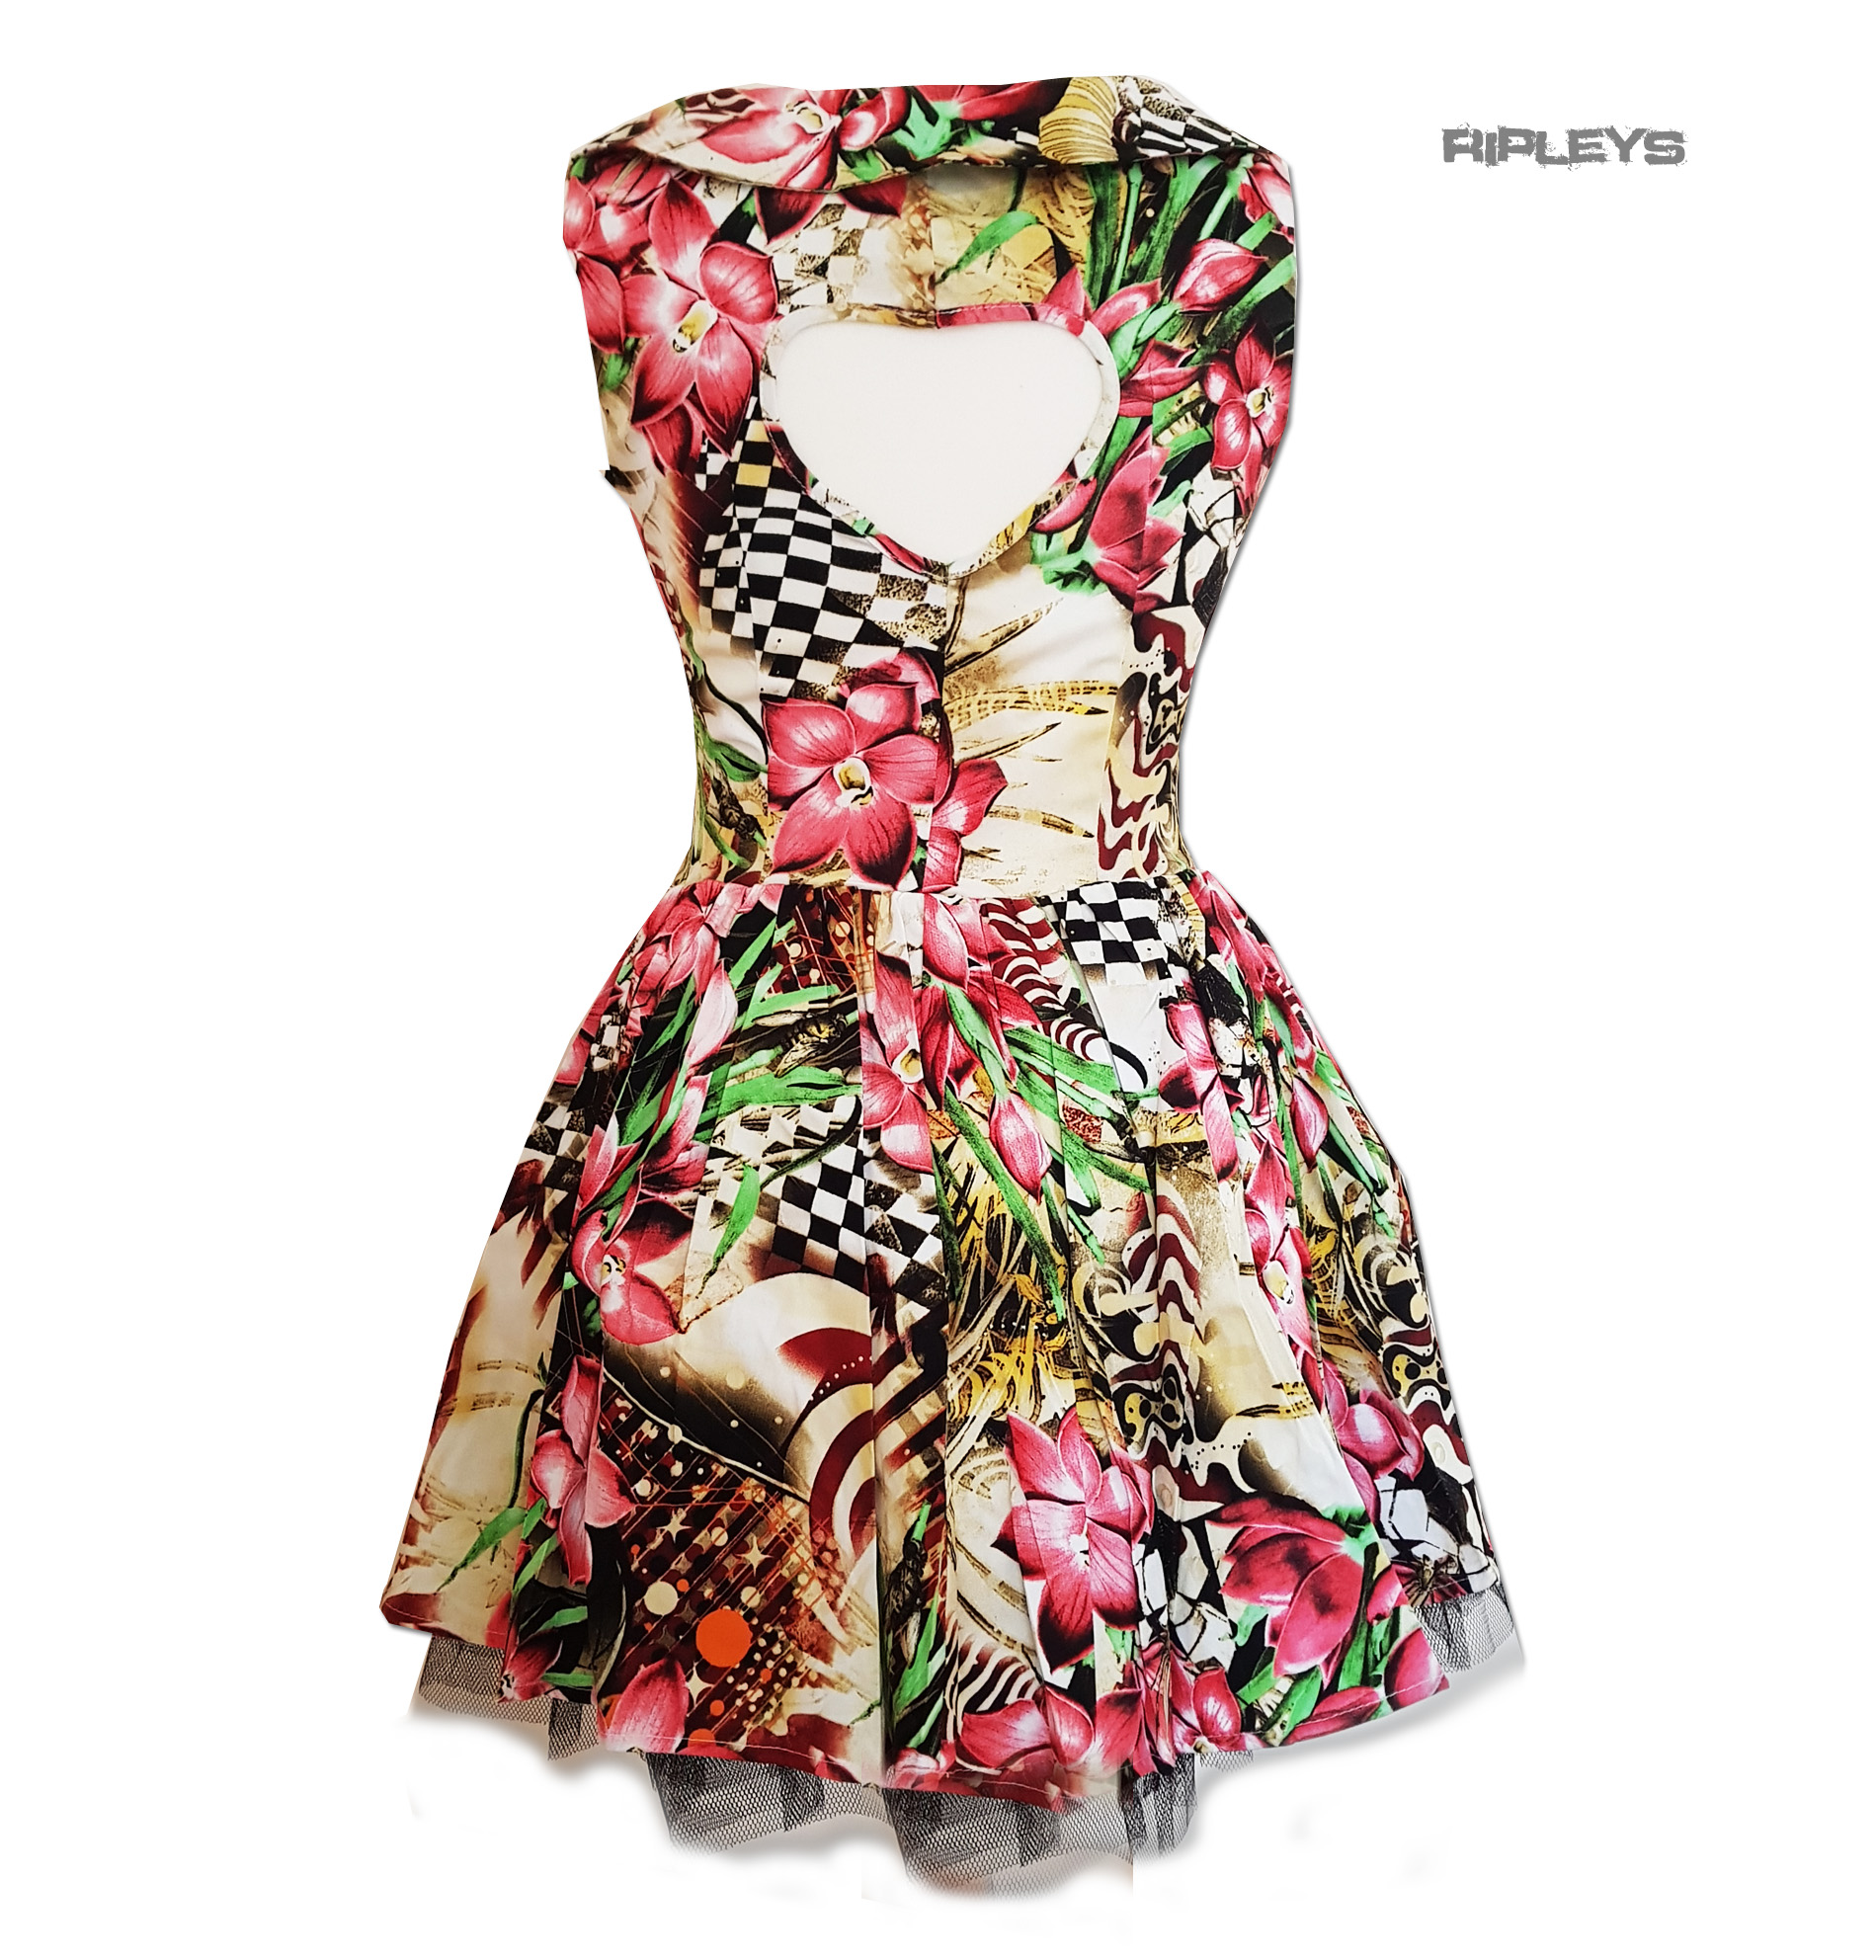 H-amp-R-Hearts-amp-Roses-London-Pink-Mini-Dress-039-Lily-Checkerboard-039-Flowers-All-Sizes thumbnail 8